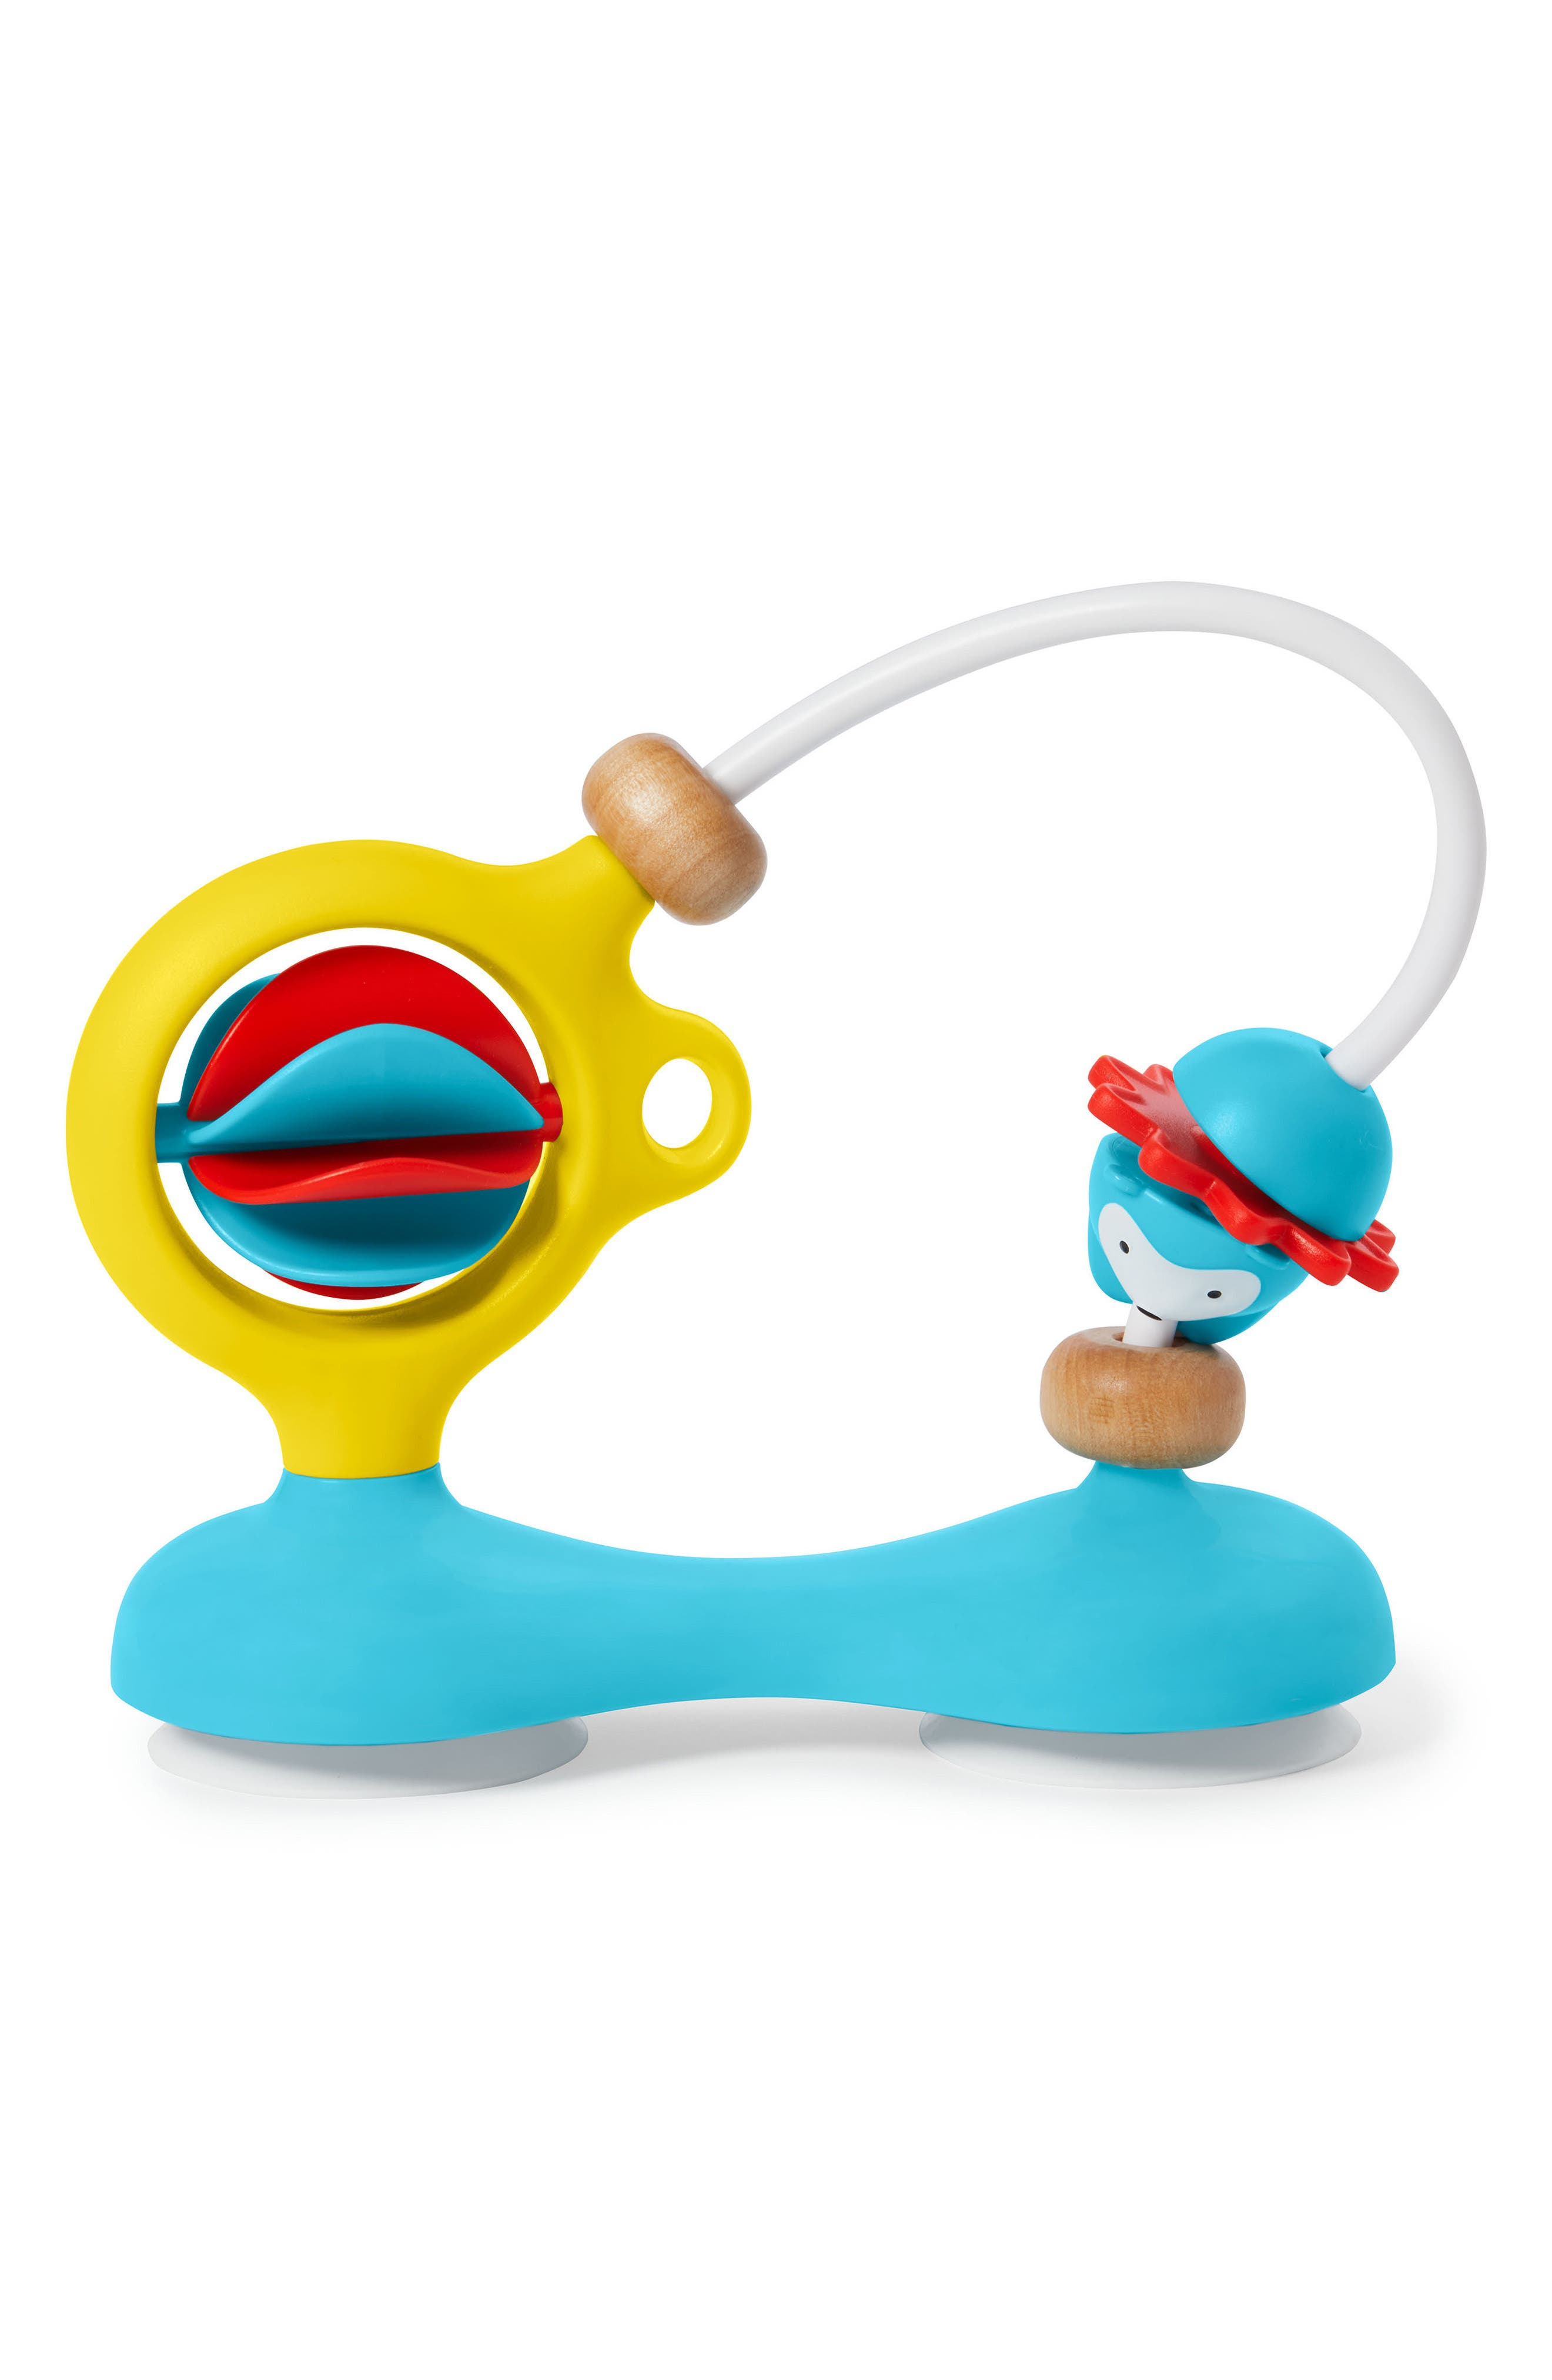 Explore N More Bead Mover Highchair Toy,                             Alternate thumbnail 2, color,                             400